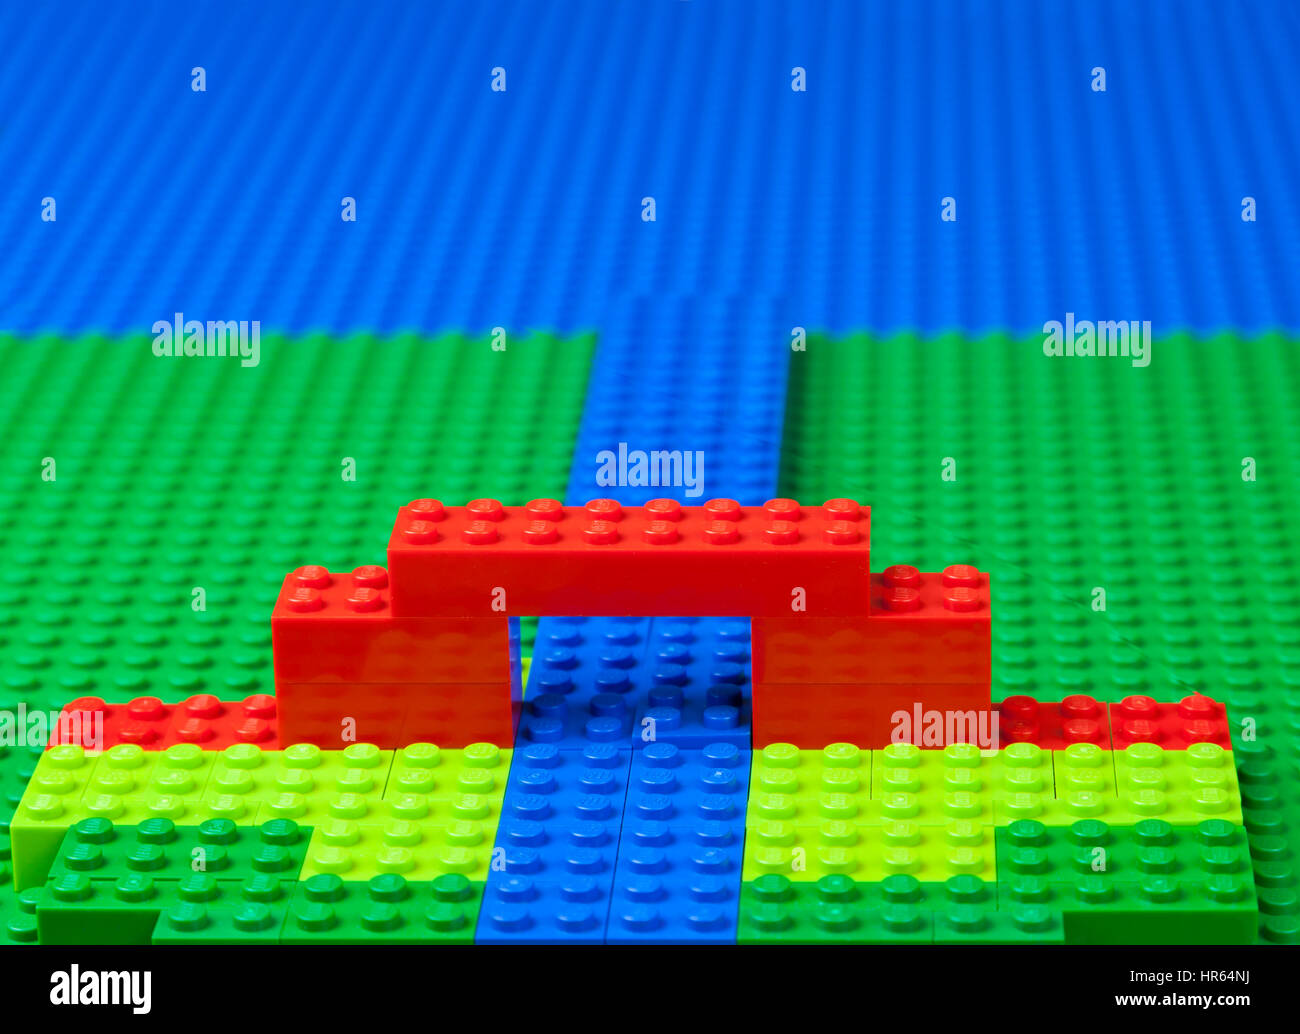 Lego landscape with bridge over river, stream, canal, etc. - green meadows or marshland and the blue sea. - Stock Image